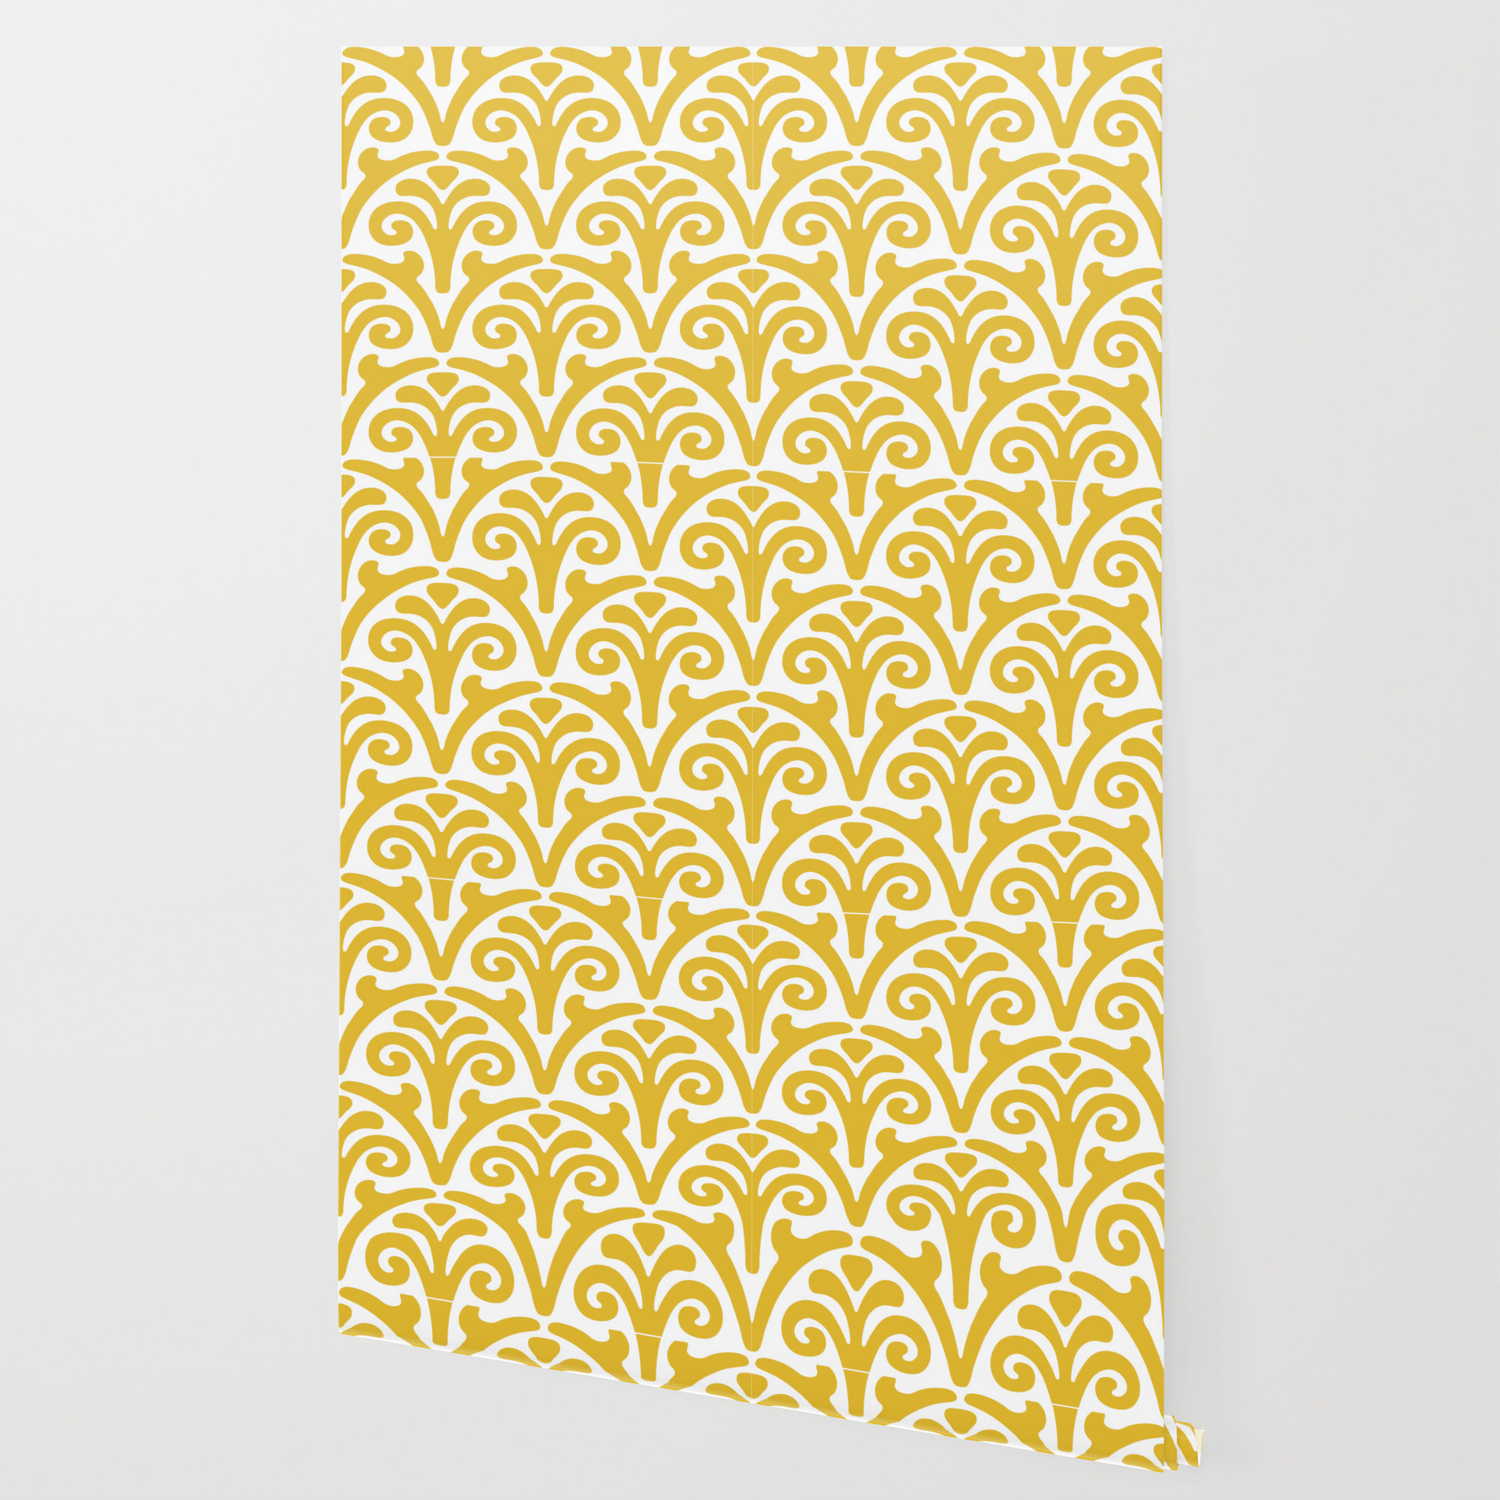 Floral Scallop Pattern Mustard Yellow Wallpaper By Tonymagner